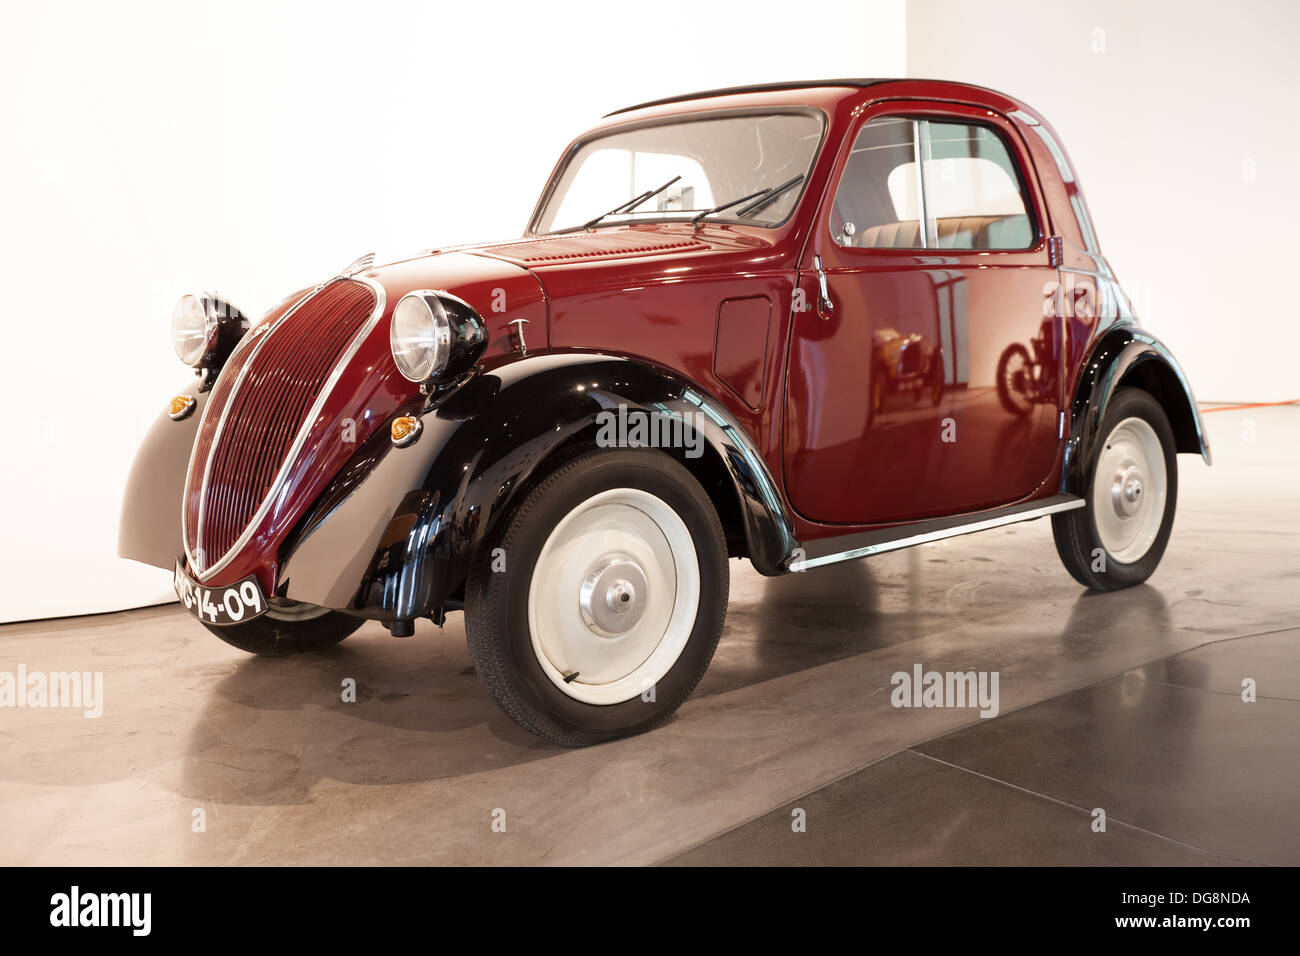 Fiat 500 Topolino (model 1936), Malaga car Museum, Spain. Malaga car museum holds one of the largest collection of vintage cars. - Stock Image